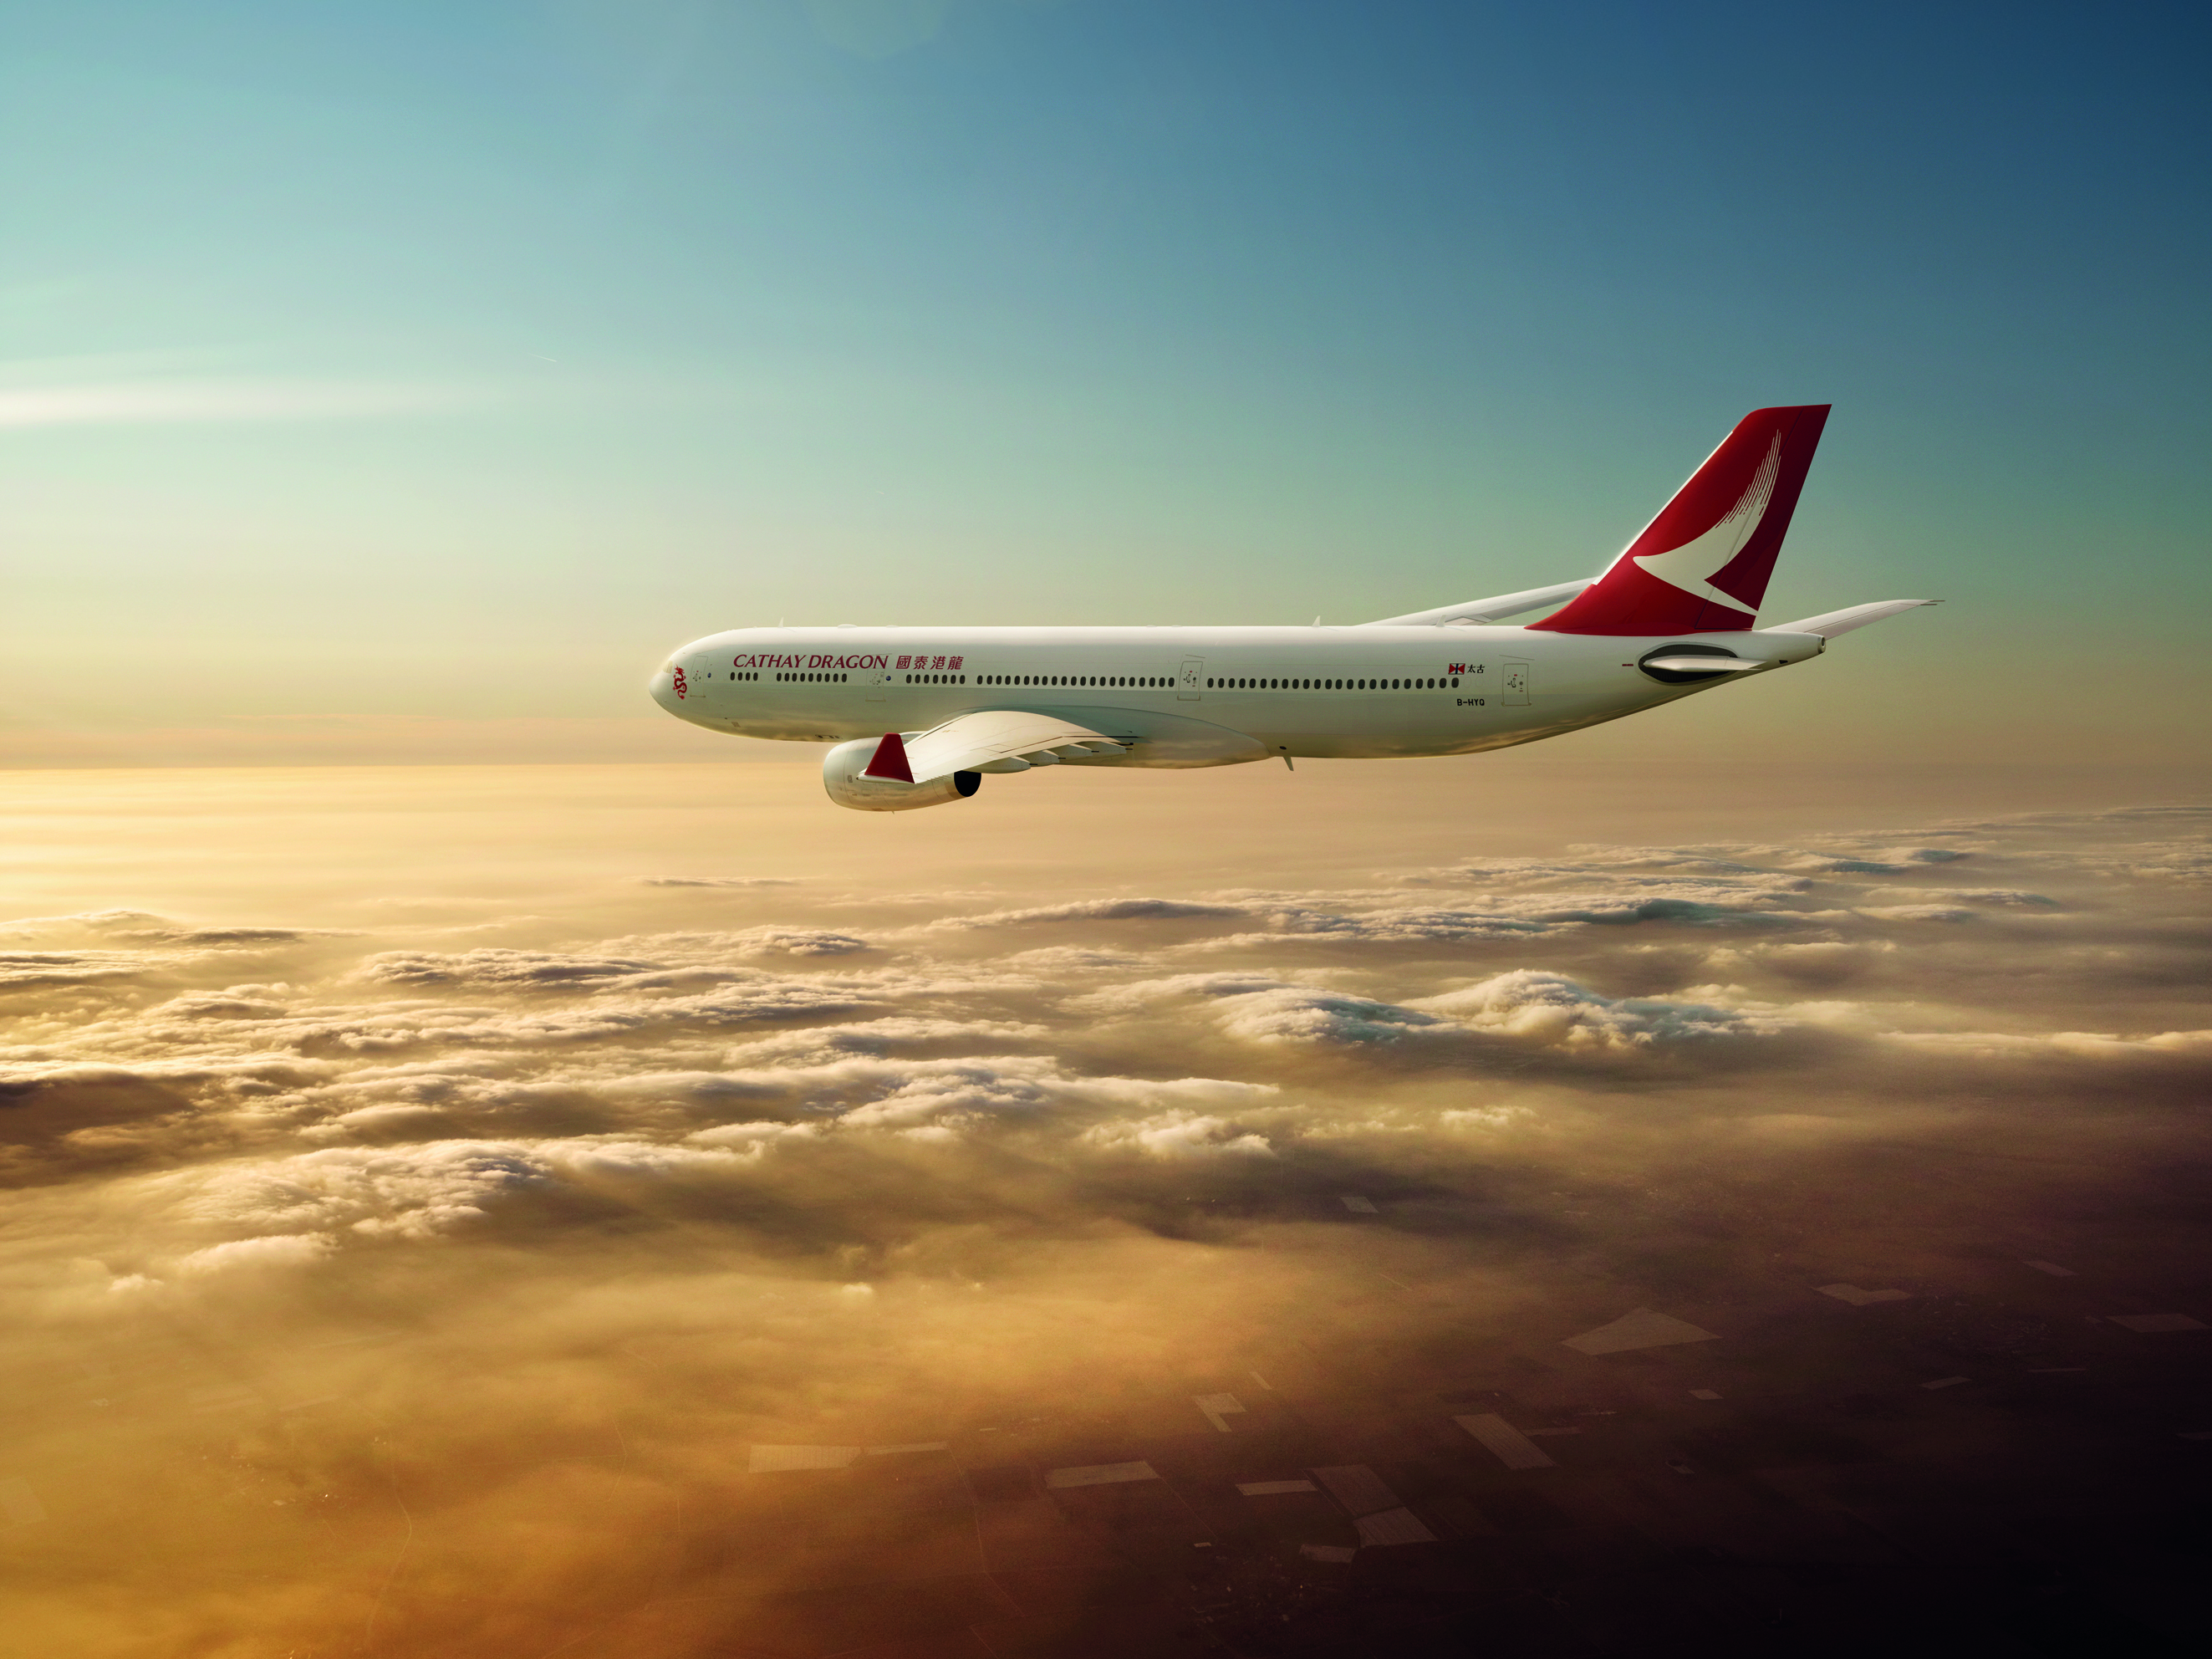 Cathay Dragon New Livery Photo: Cathay Pacific